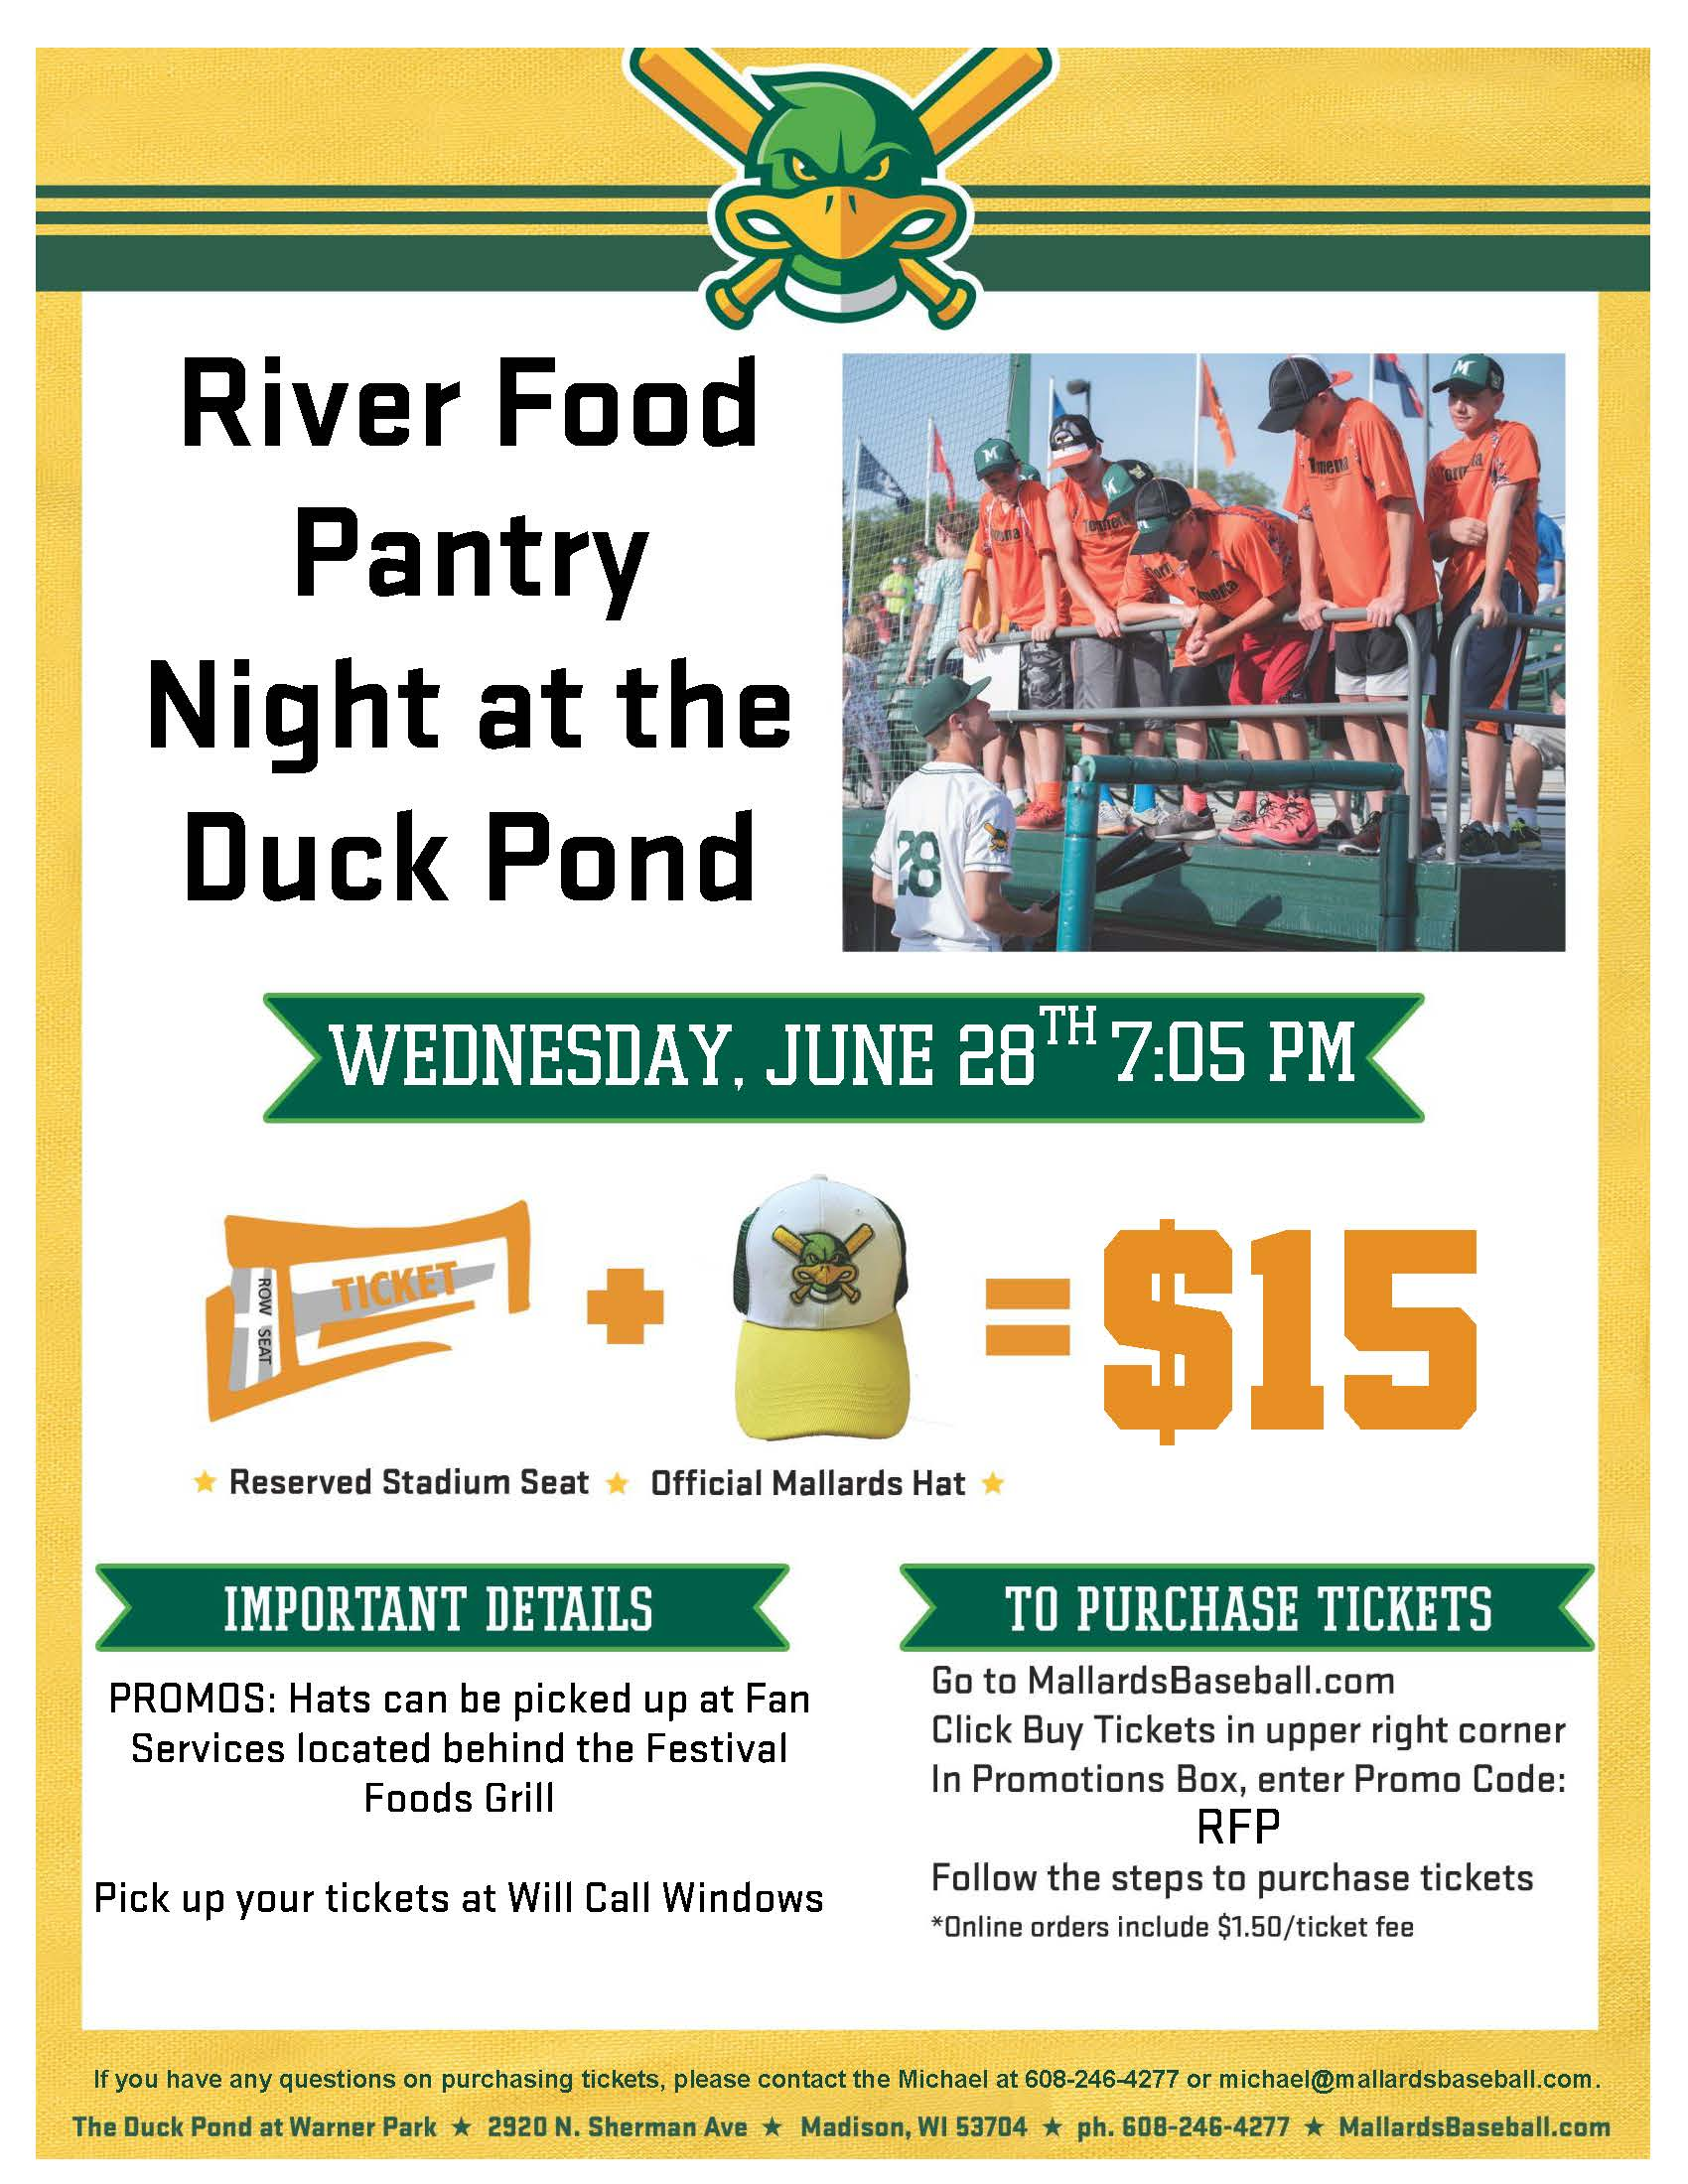 River Food Panty Info Flyer